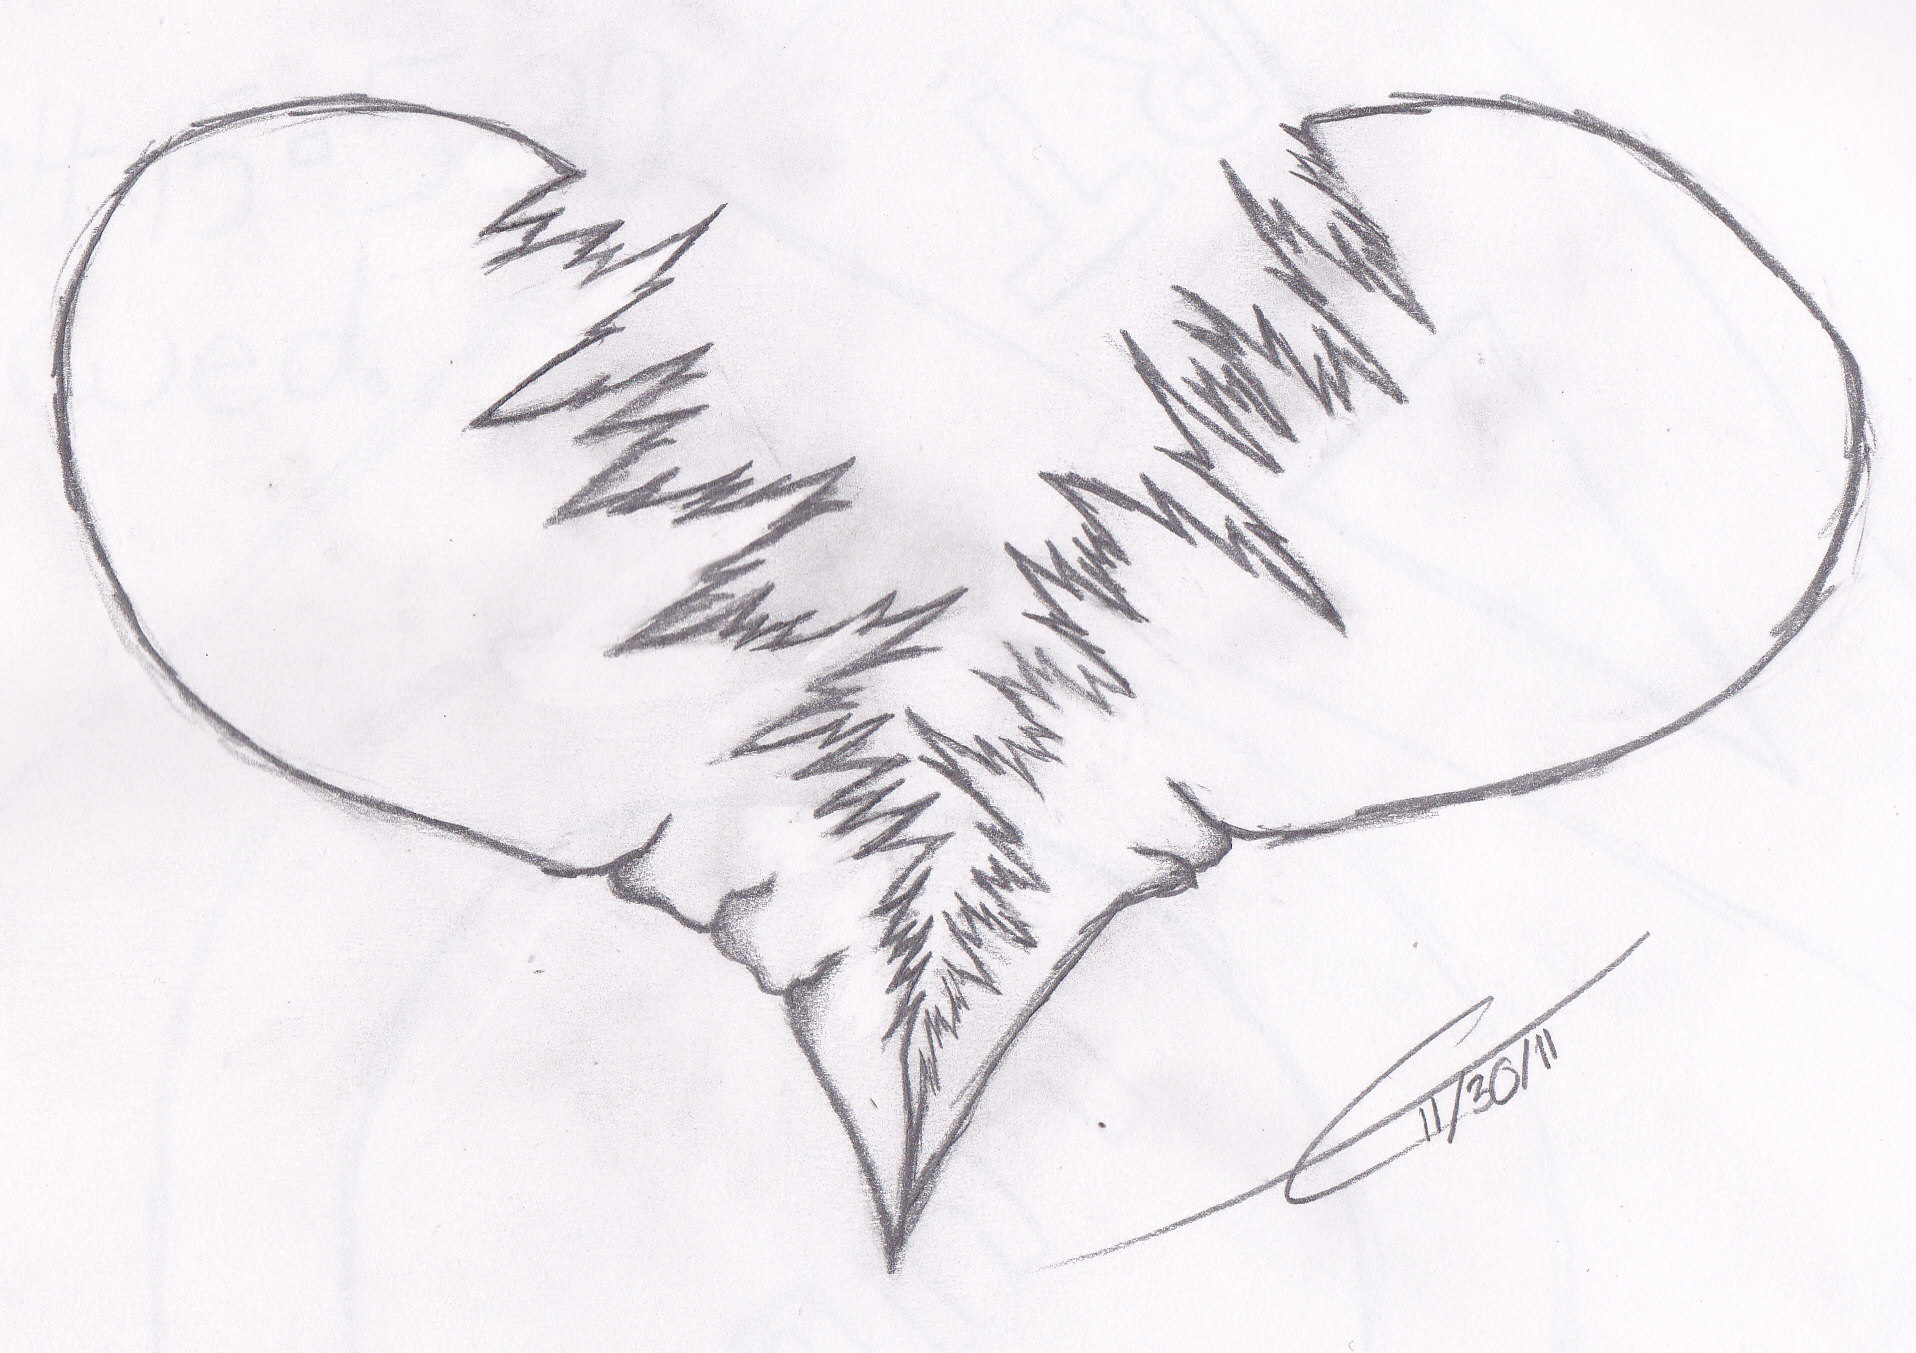 Easy Broken Heart Drawings Images amp Pictures Becuo